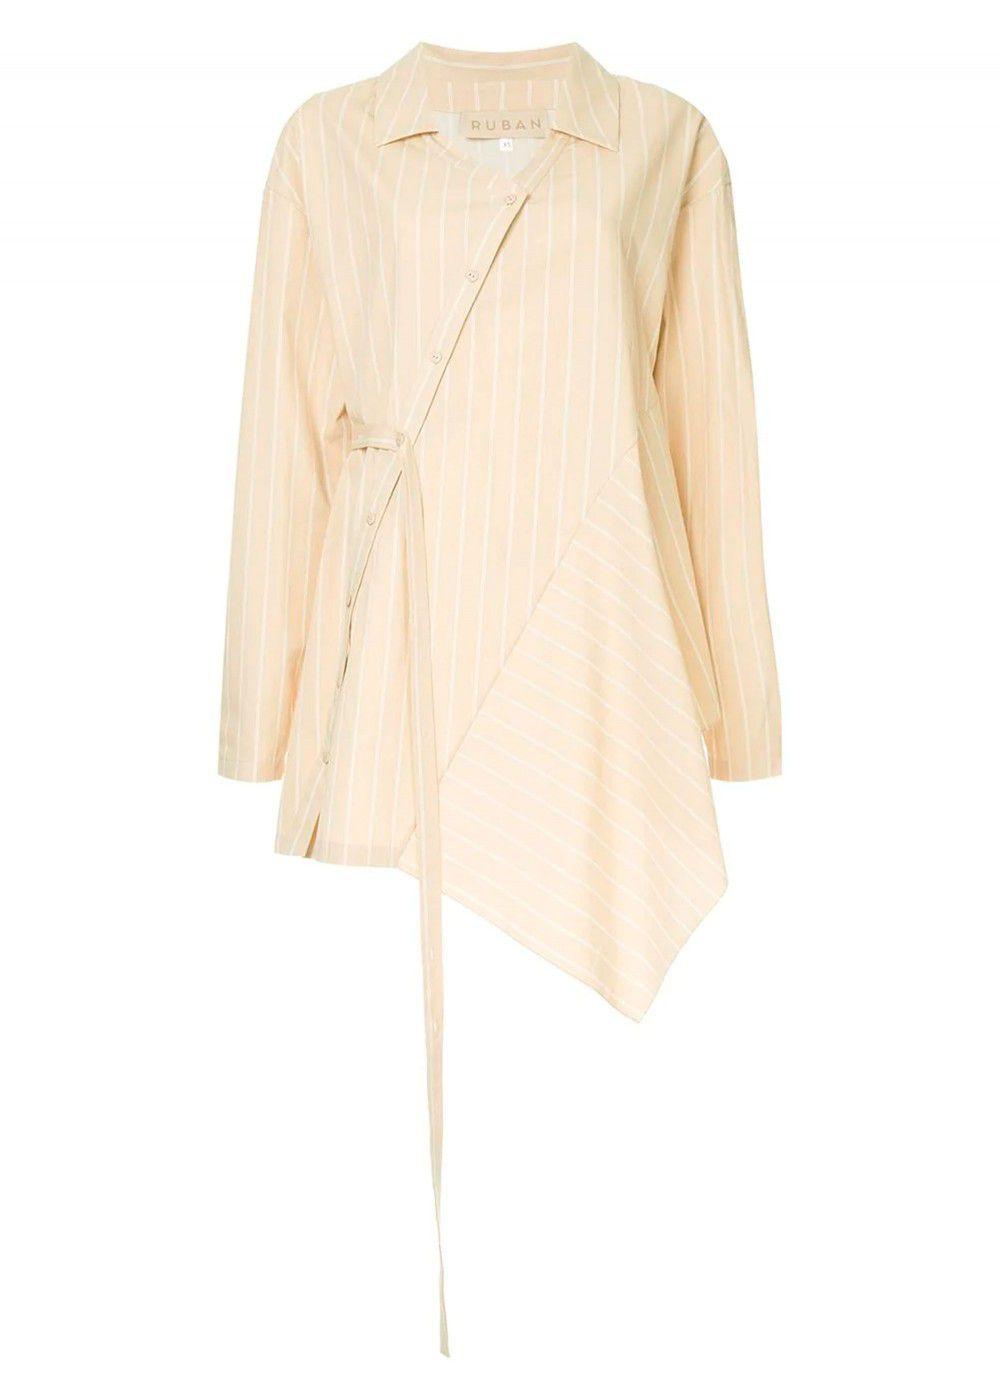 Ruban Asymmetric Striped Shirt